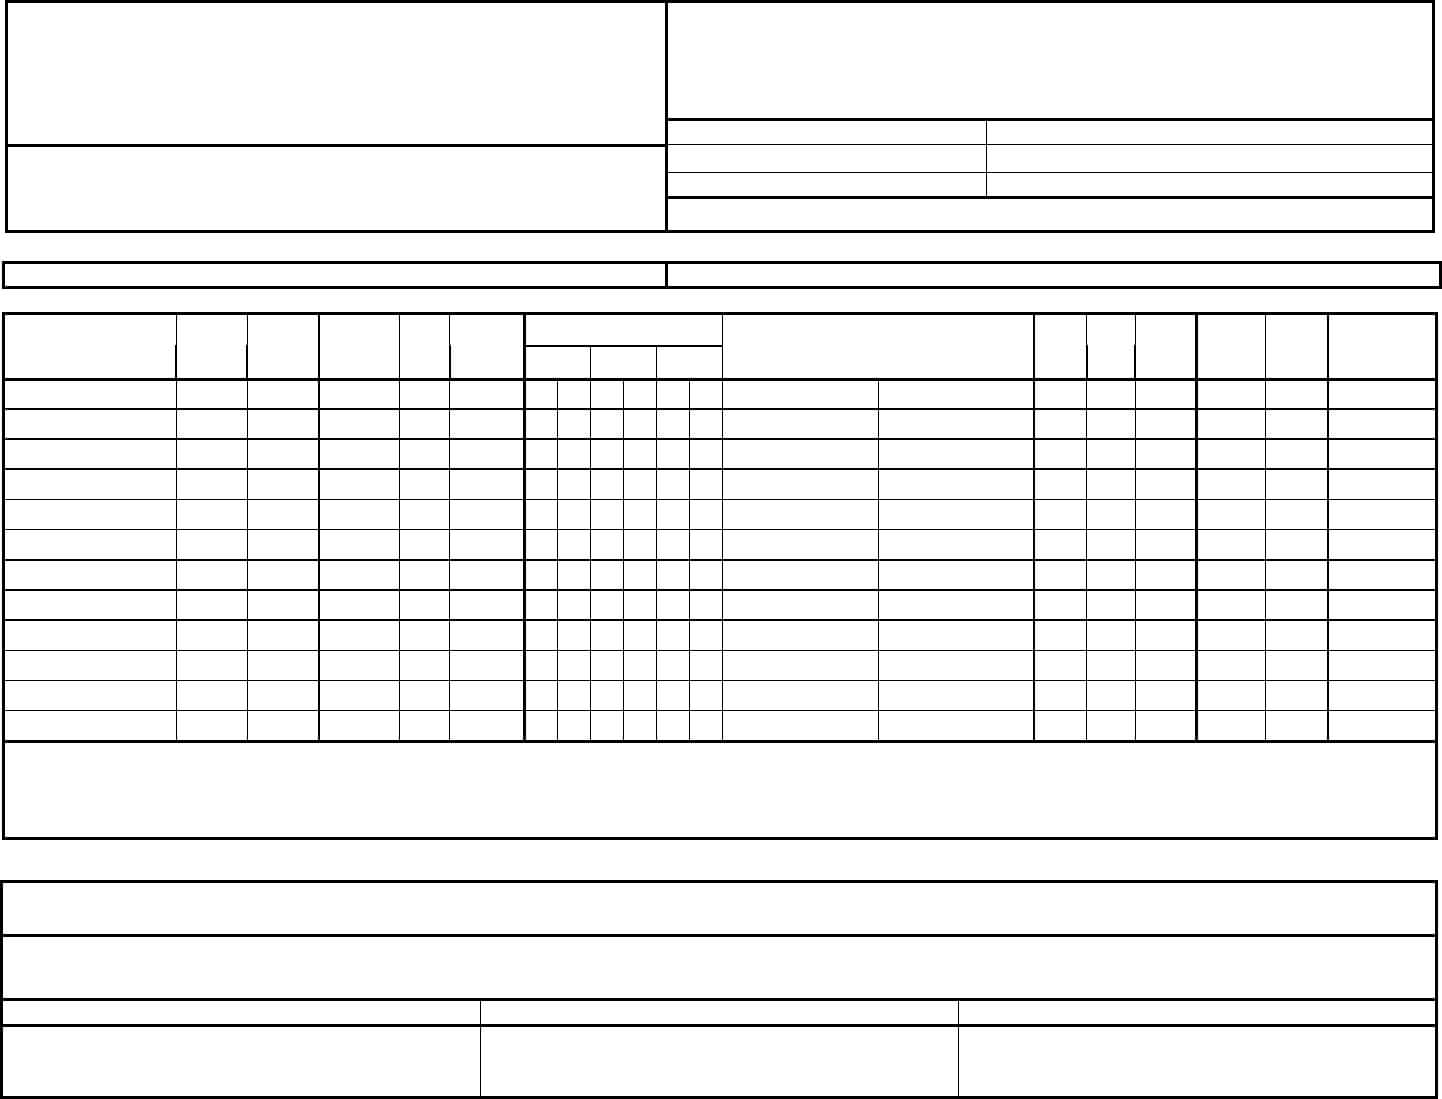 Piping Welding Daily Quality Control And Inspection Report Form With Regard To Welding Inspection Report Template